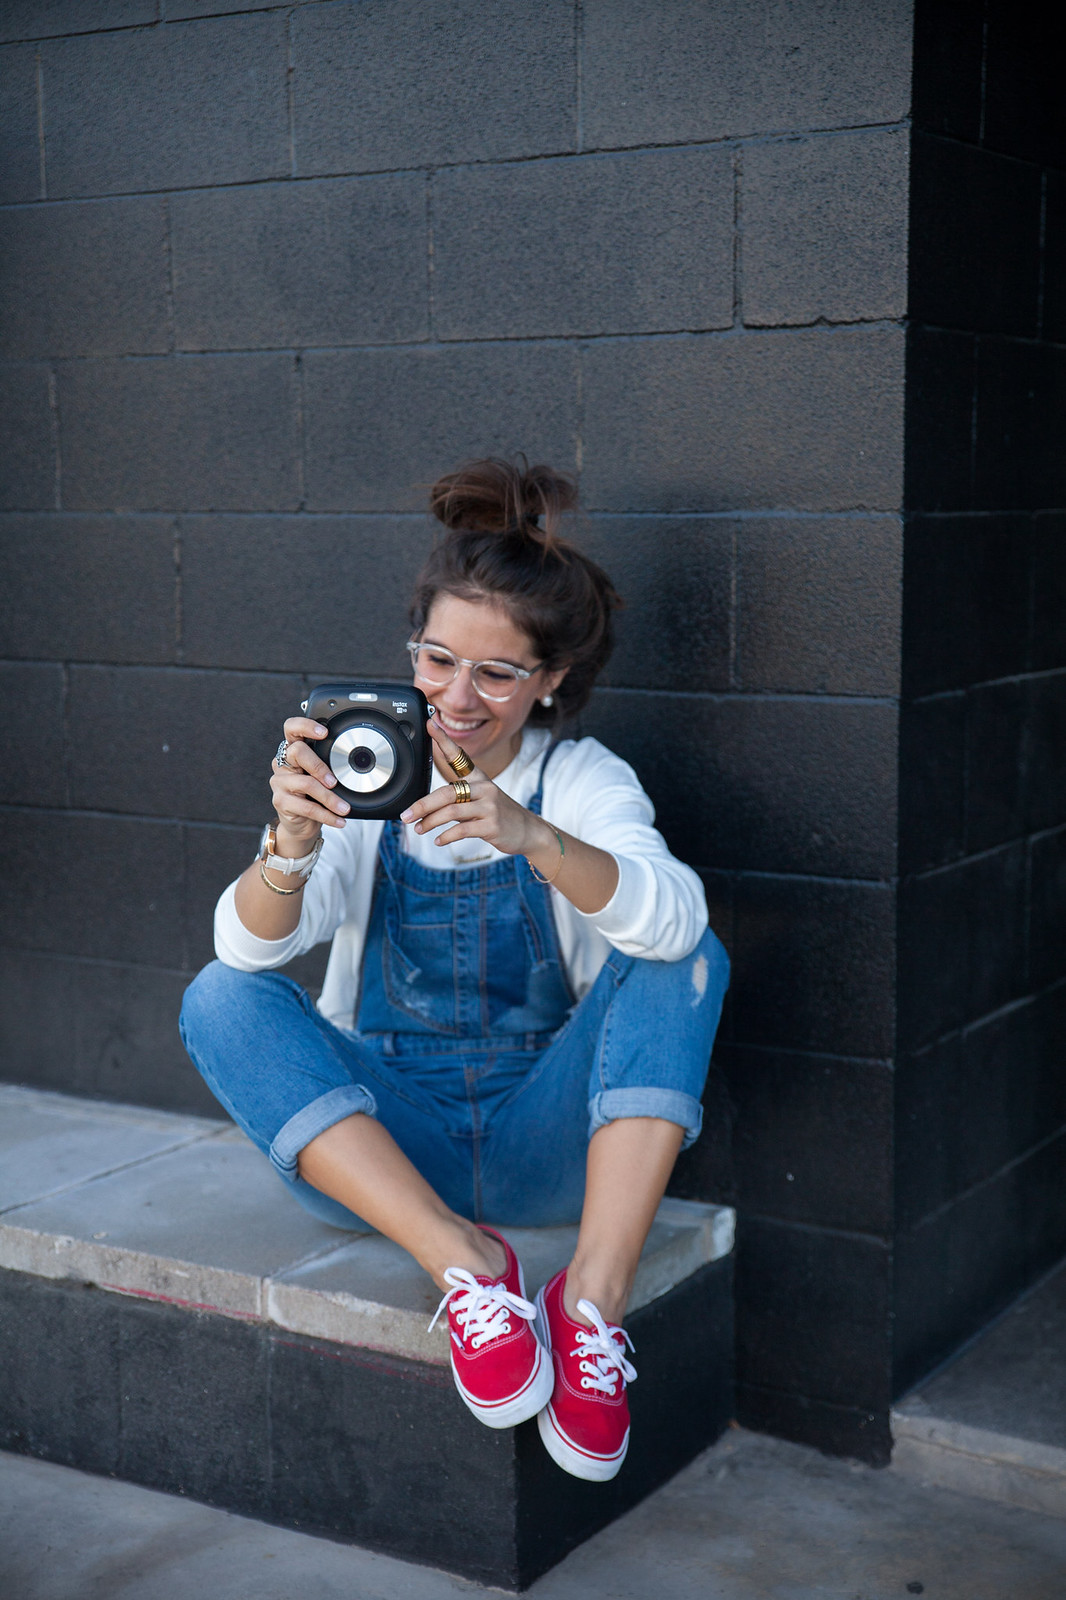 instax square sq 10 influencer barcelona theguestgirl vans red outfit laura santolaria adictik emprendedora denim overall red shoes vans